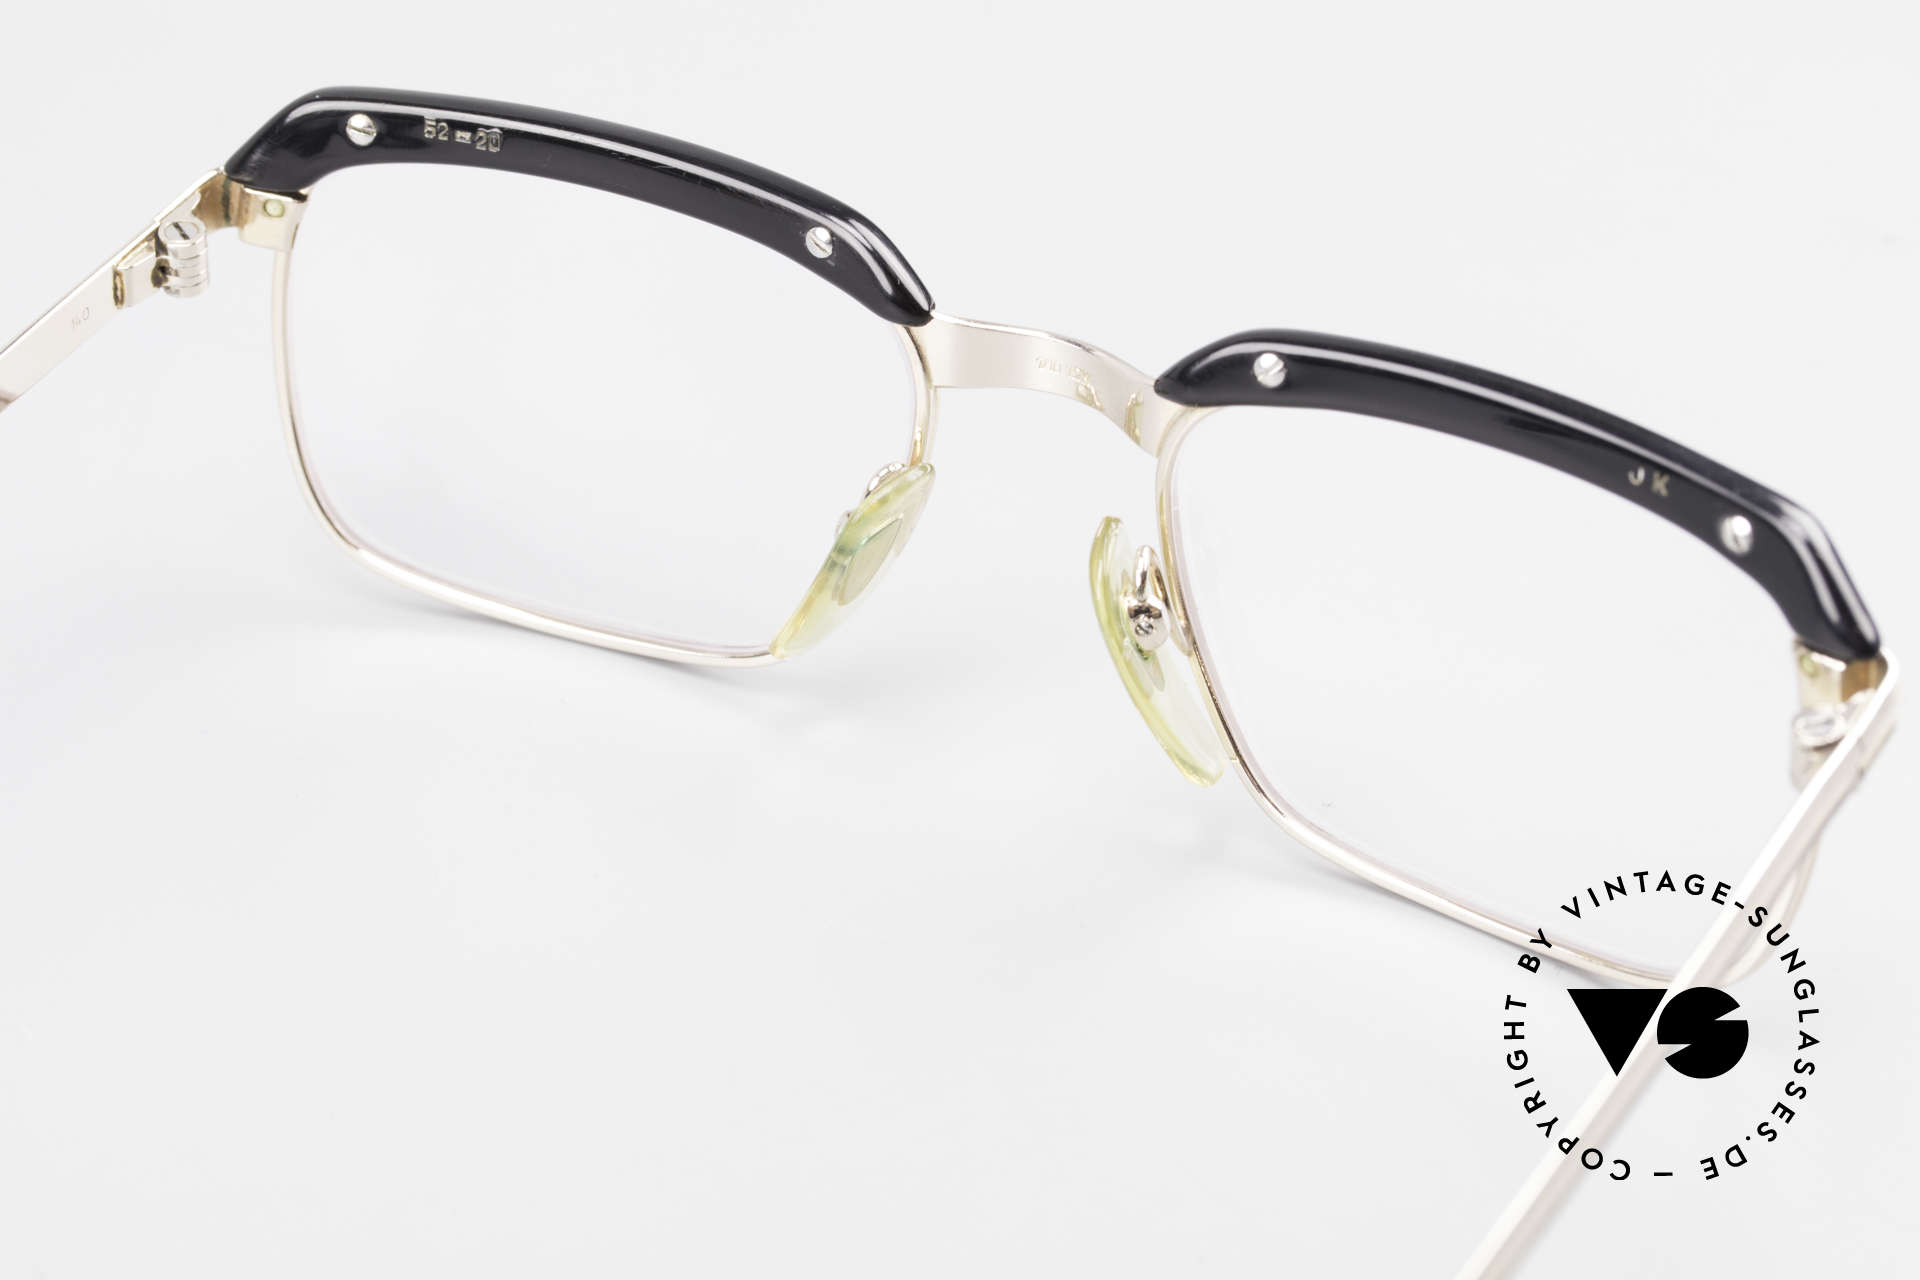 Metzler JK Gold Filled 60's Glasses Frame, but this quality frame can be glazed with lenses of any kind, Made for Men